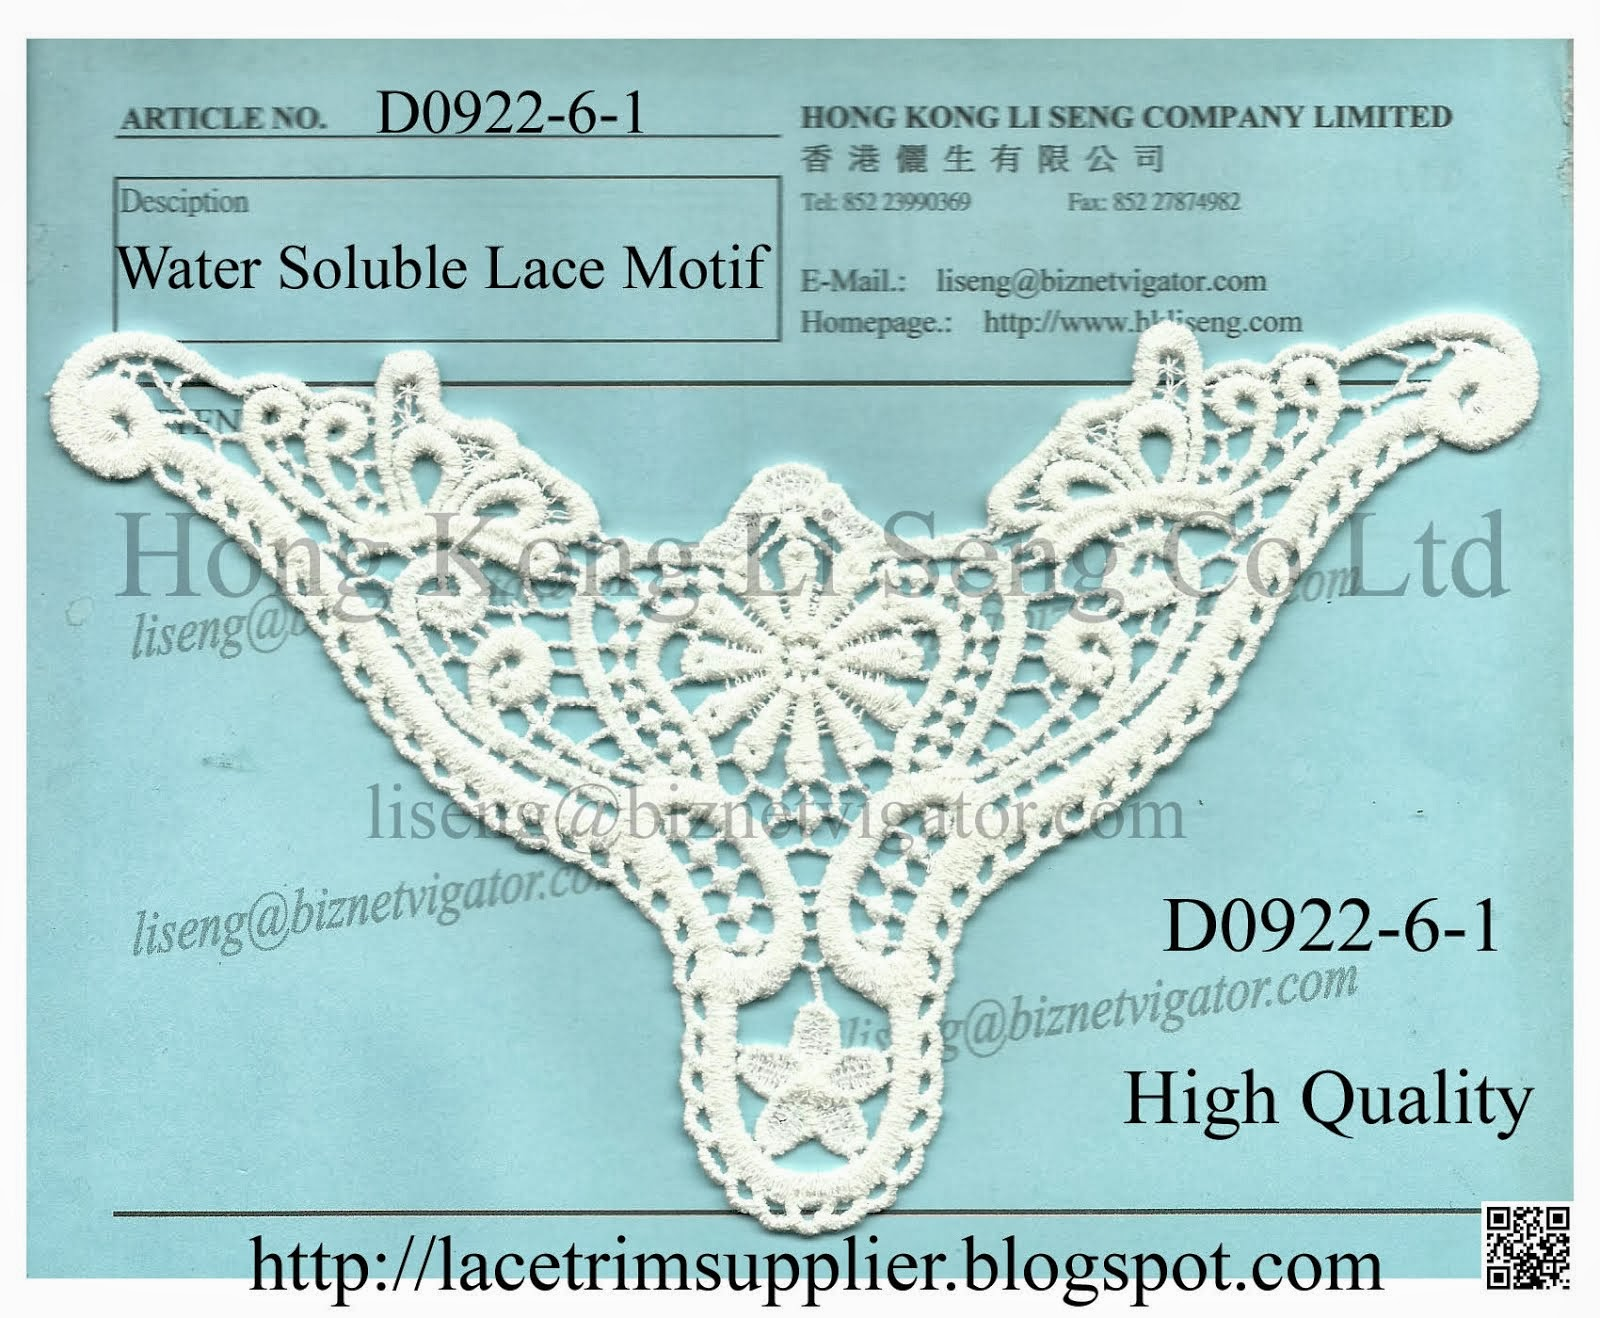 High Quality Water Soluble Lace Motif Manufacturer Wholesale and Supplier -Hong Kong Li Seng Co Ltd